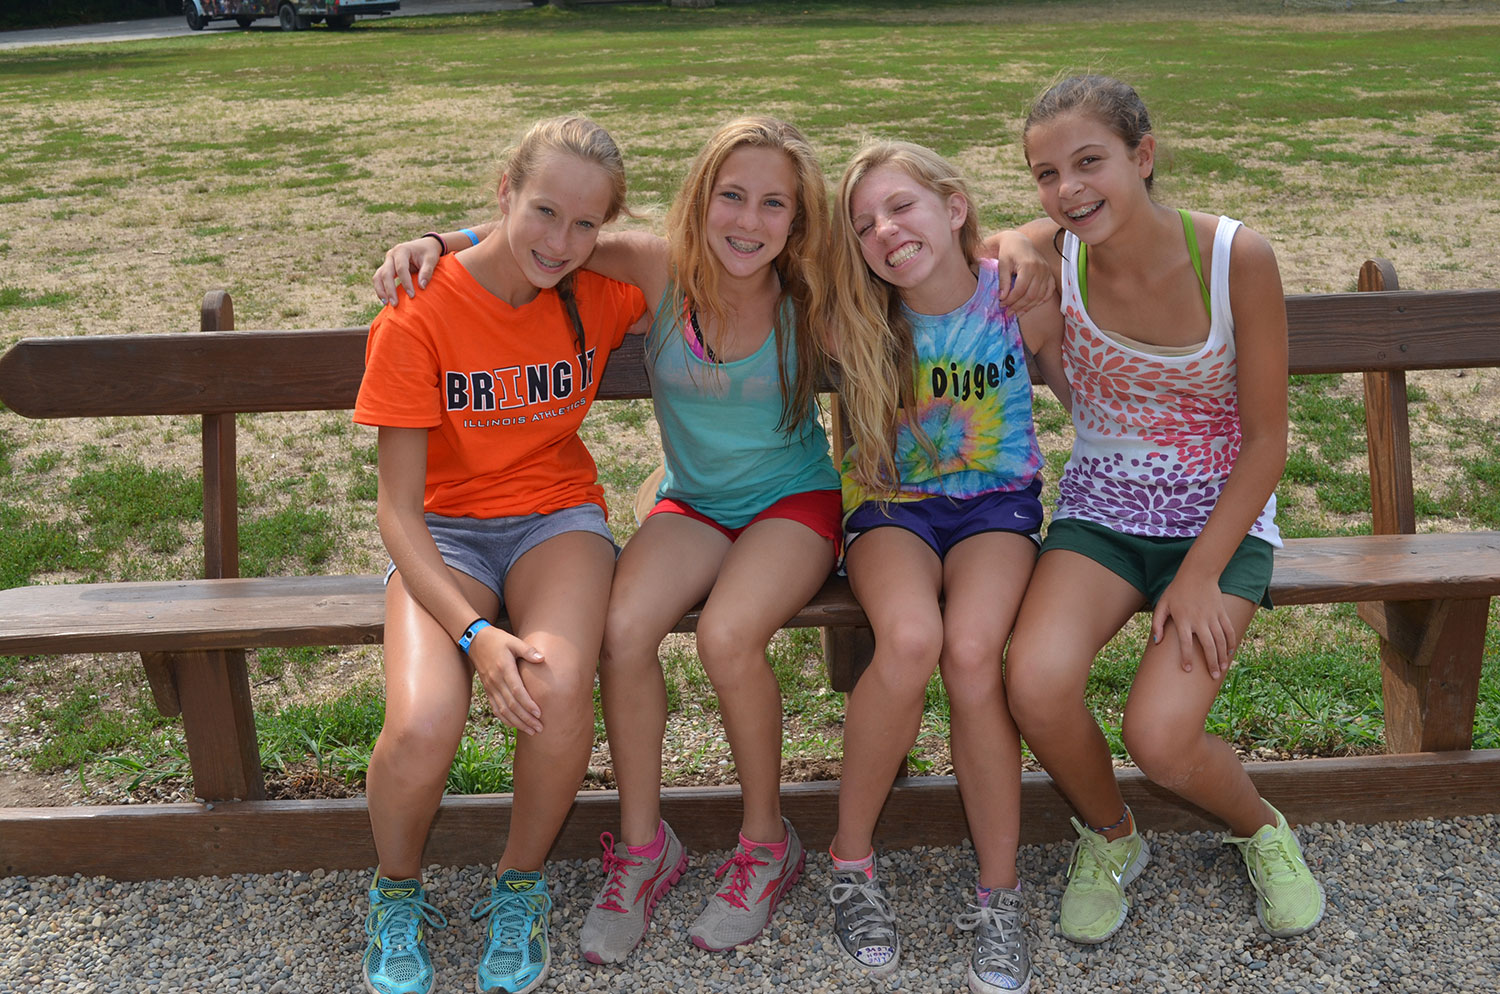 Sluty summer camps for teens apologise